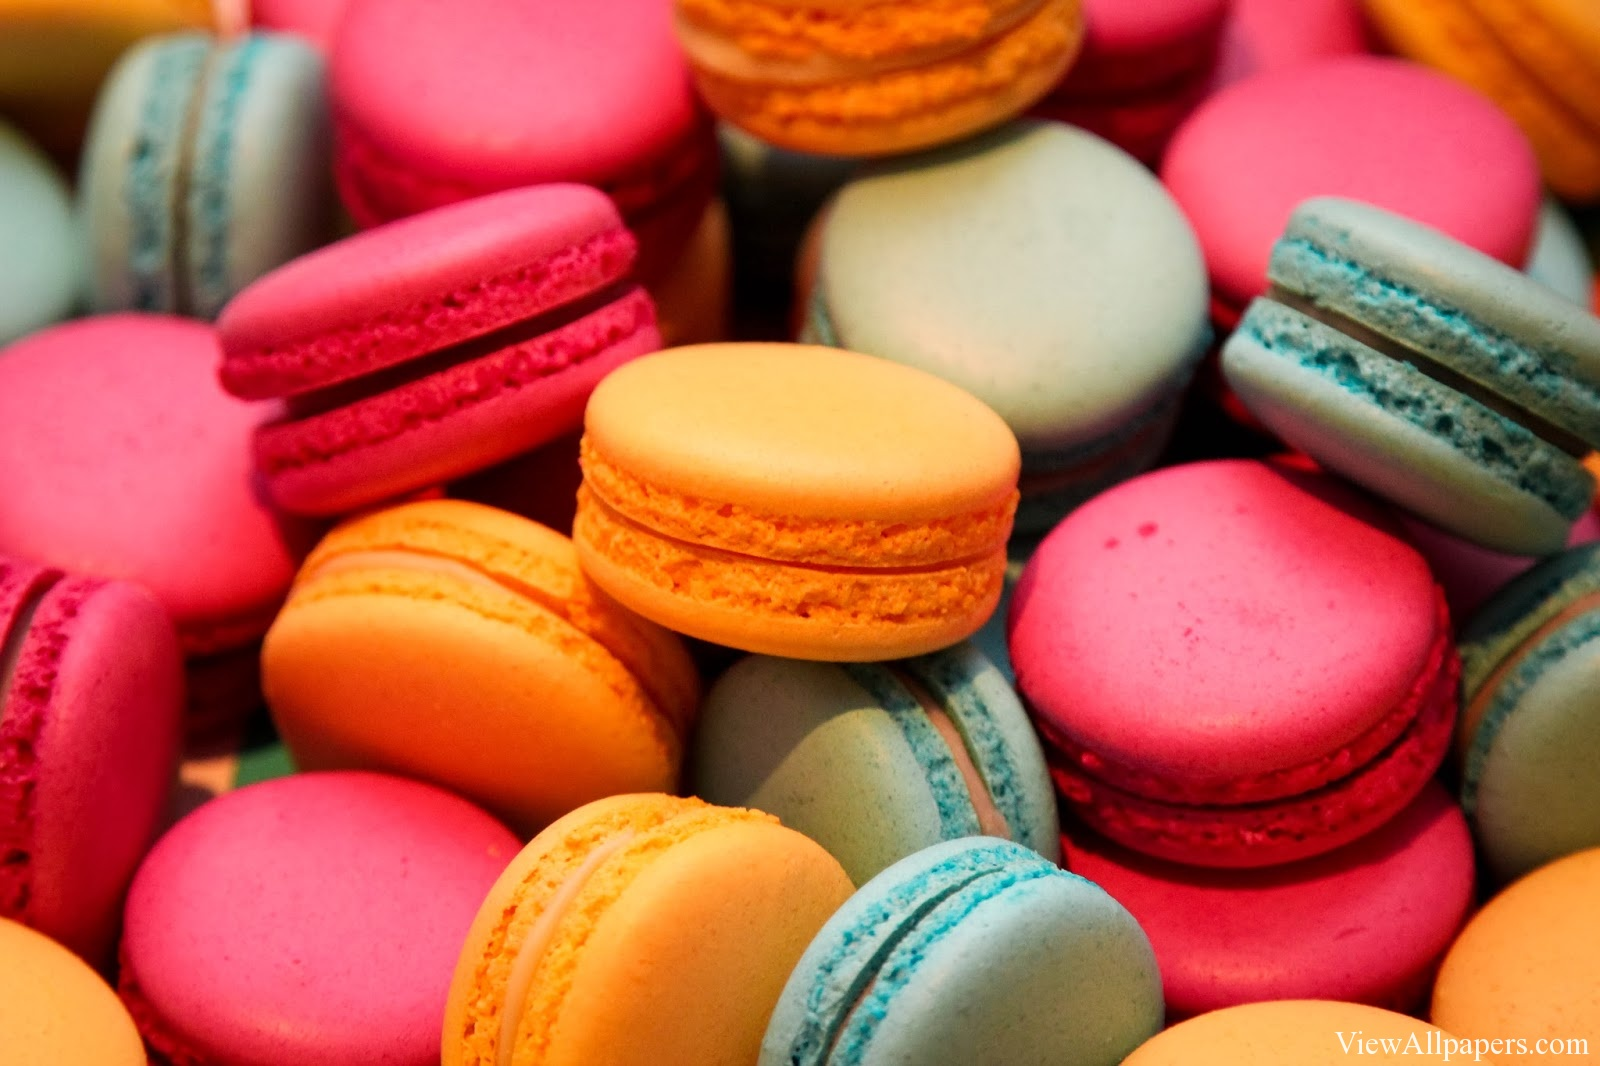 Macaron wallpaper wallpapersafari - Macaron iphone wallpaper ...